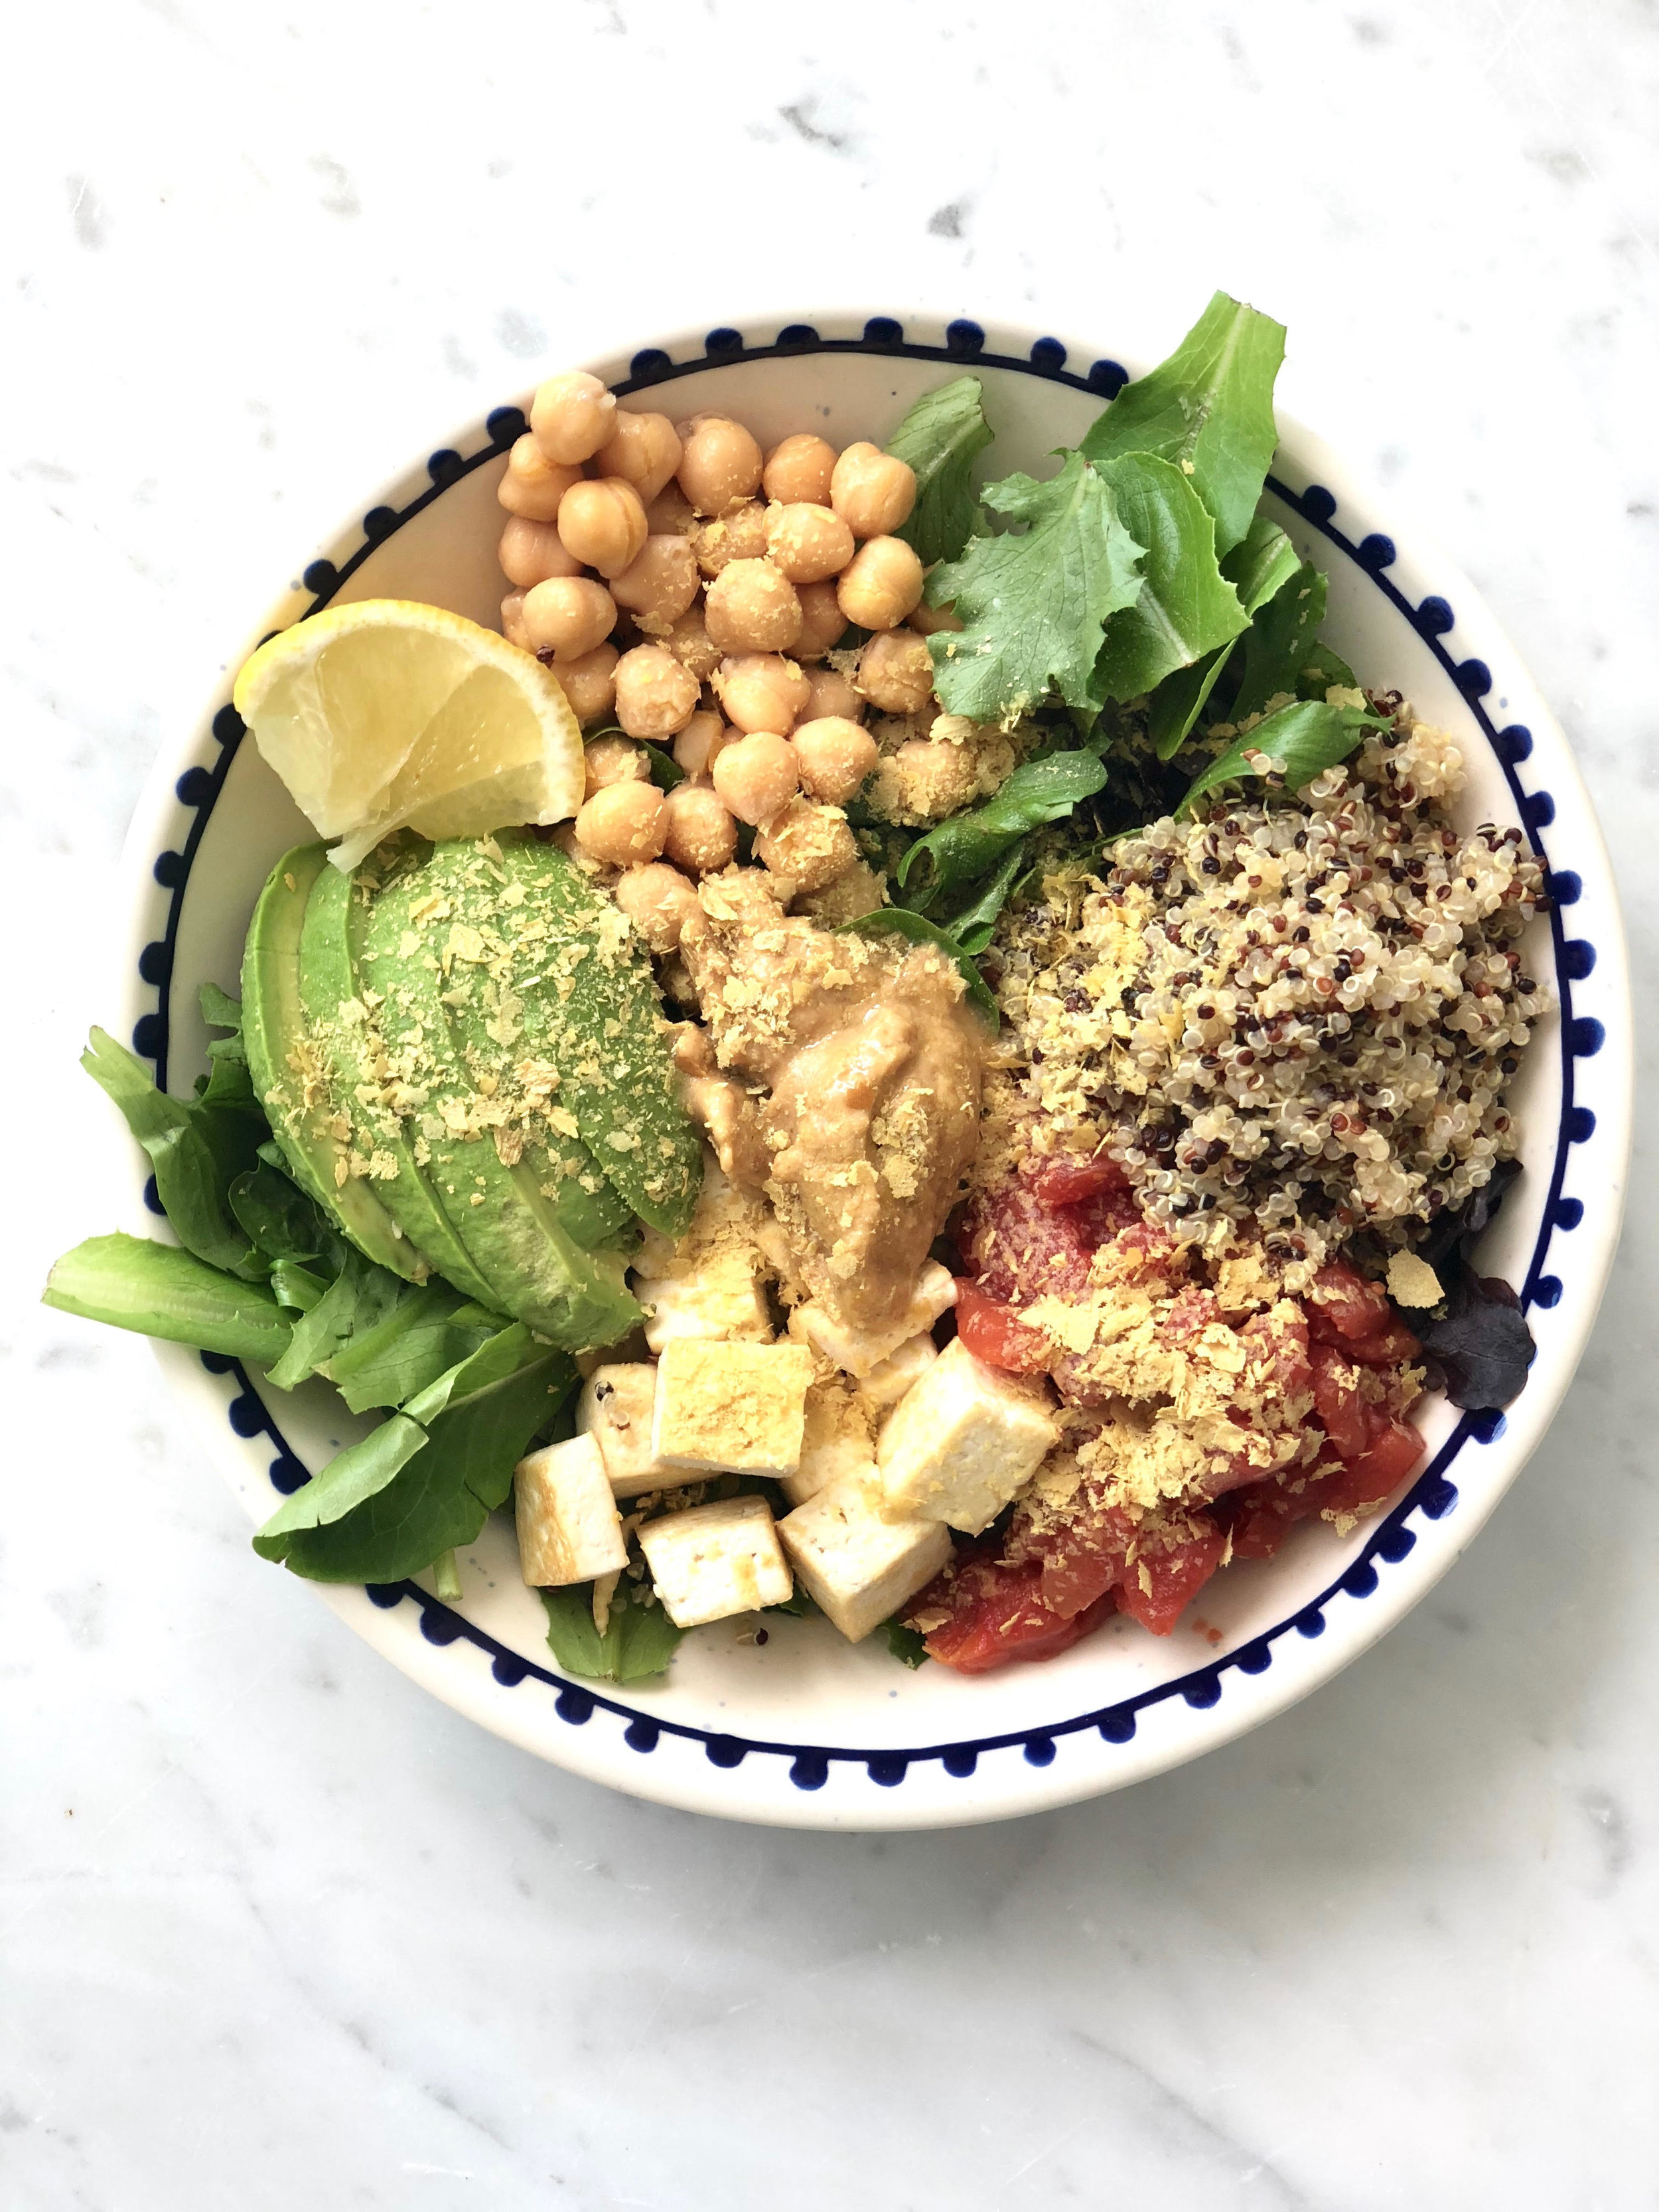 - Mixed greens, quinoa, chickpeas, tomatoes, tofu, tahini, avocado, nutritional yeast and lemon